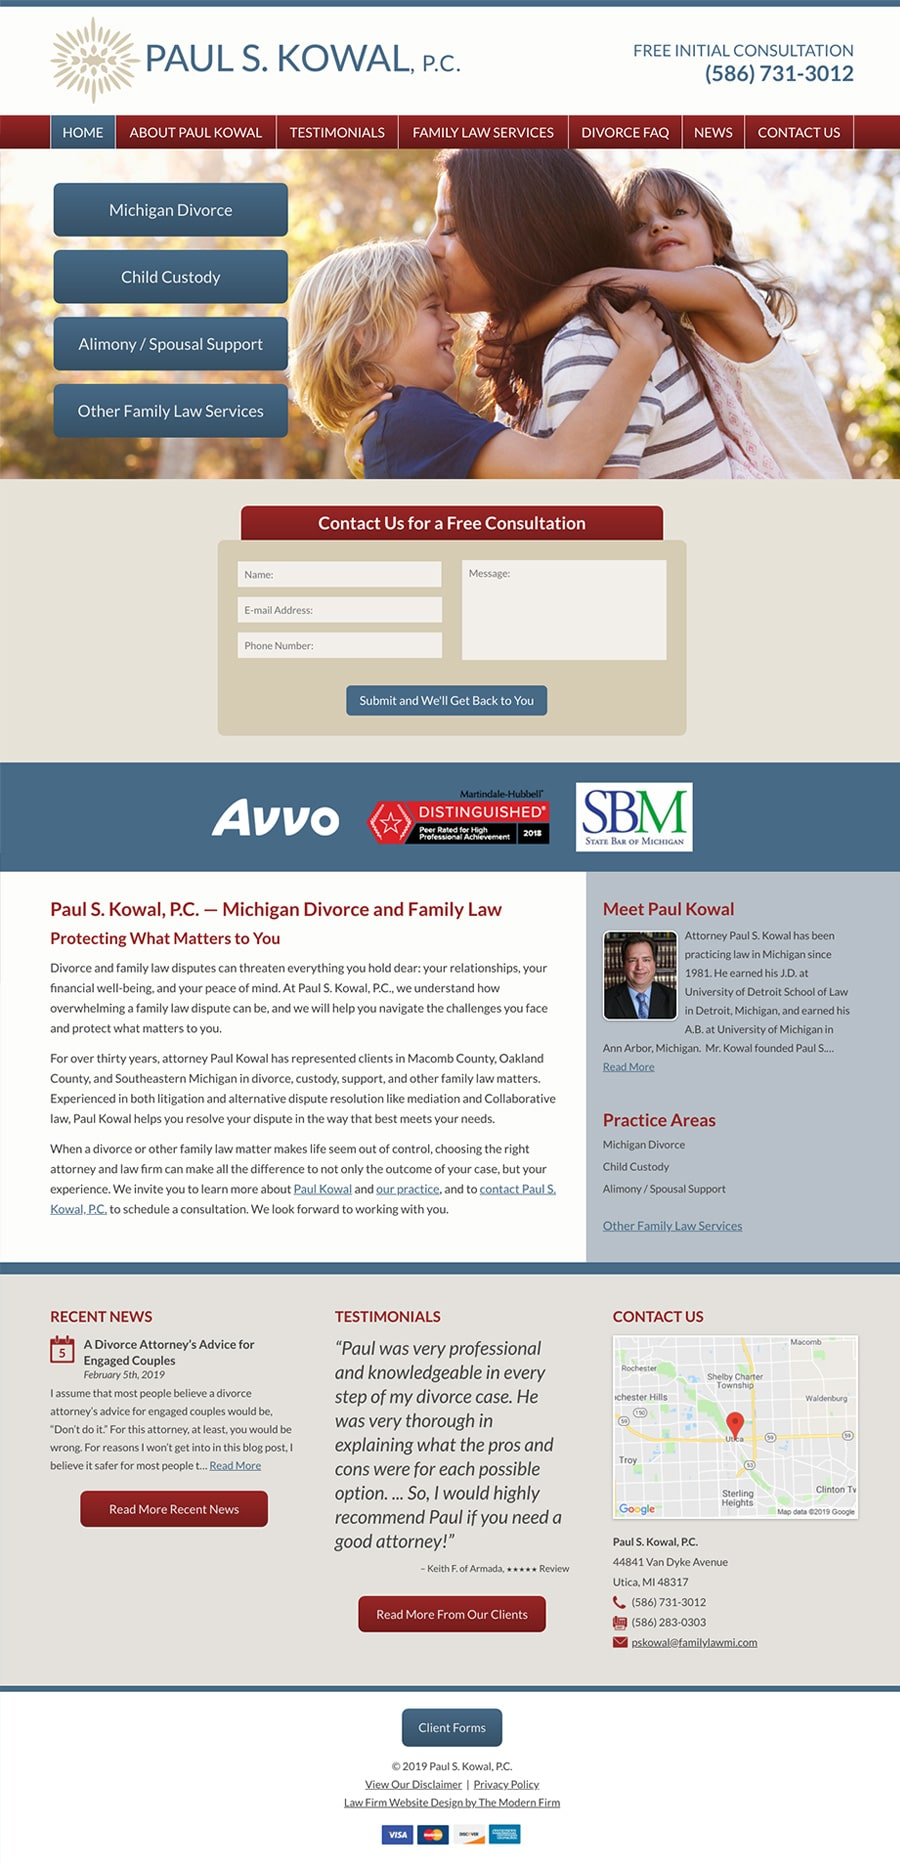 Law Firm Website Design for Paul S. Kowal, P.C.